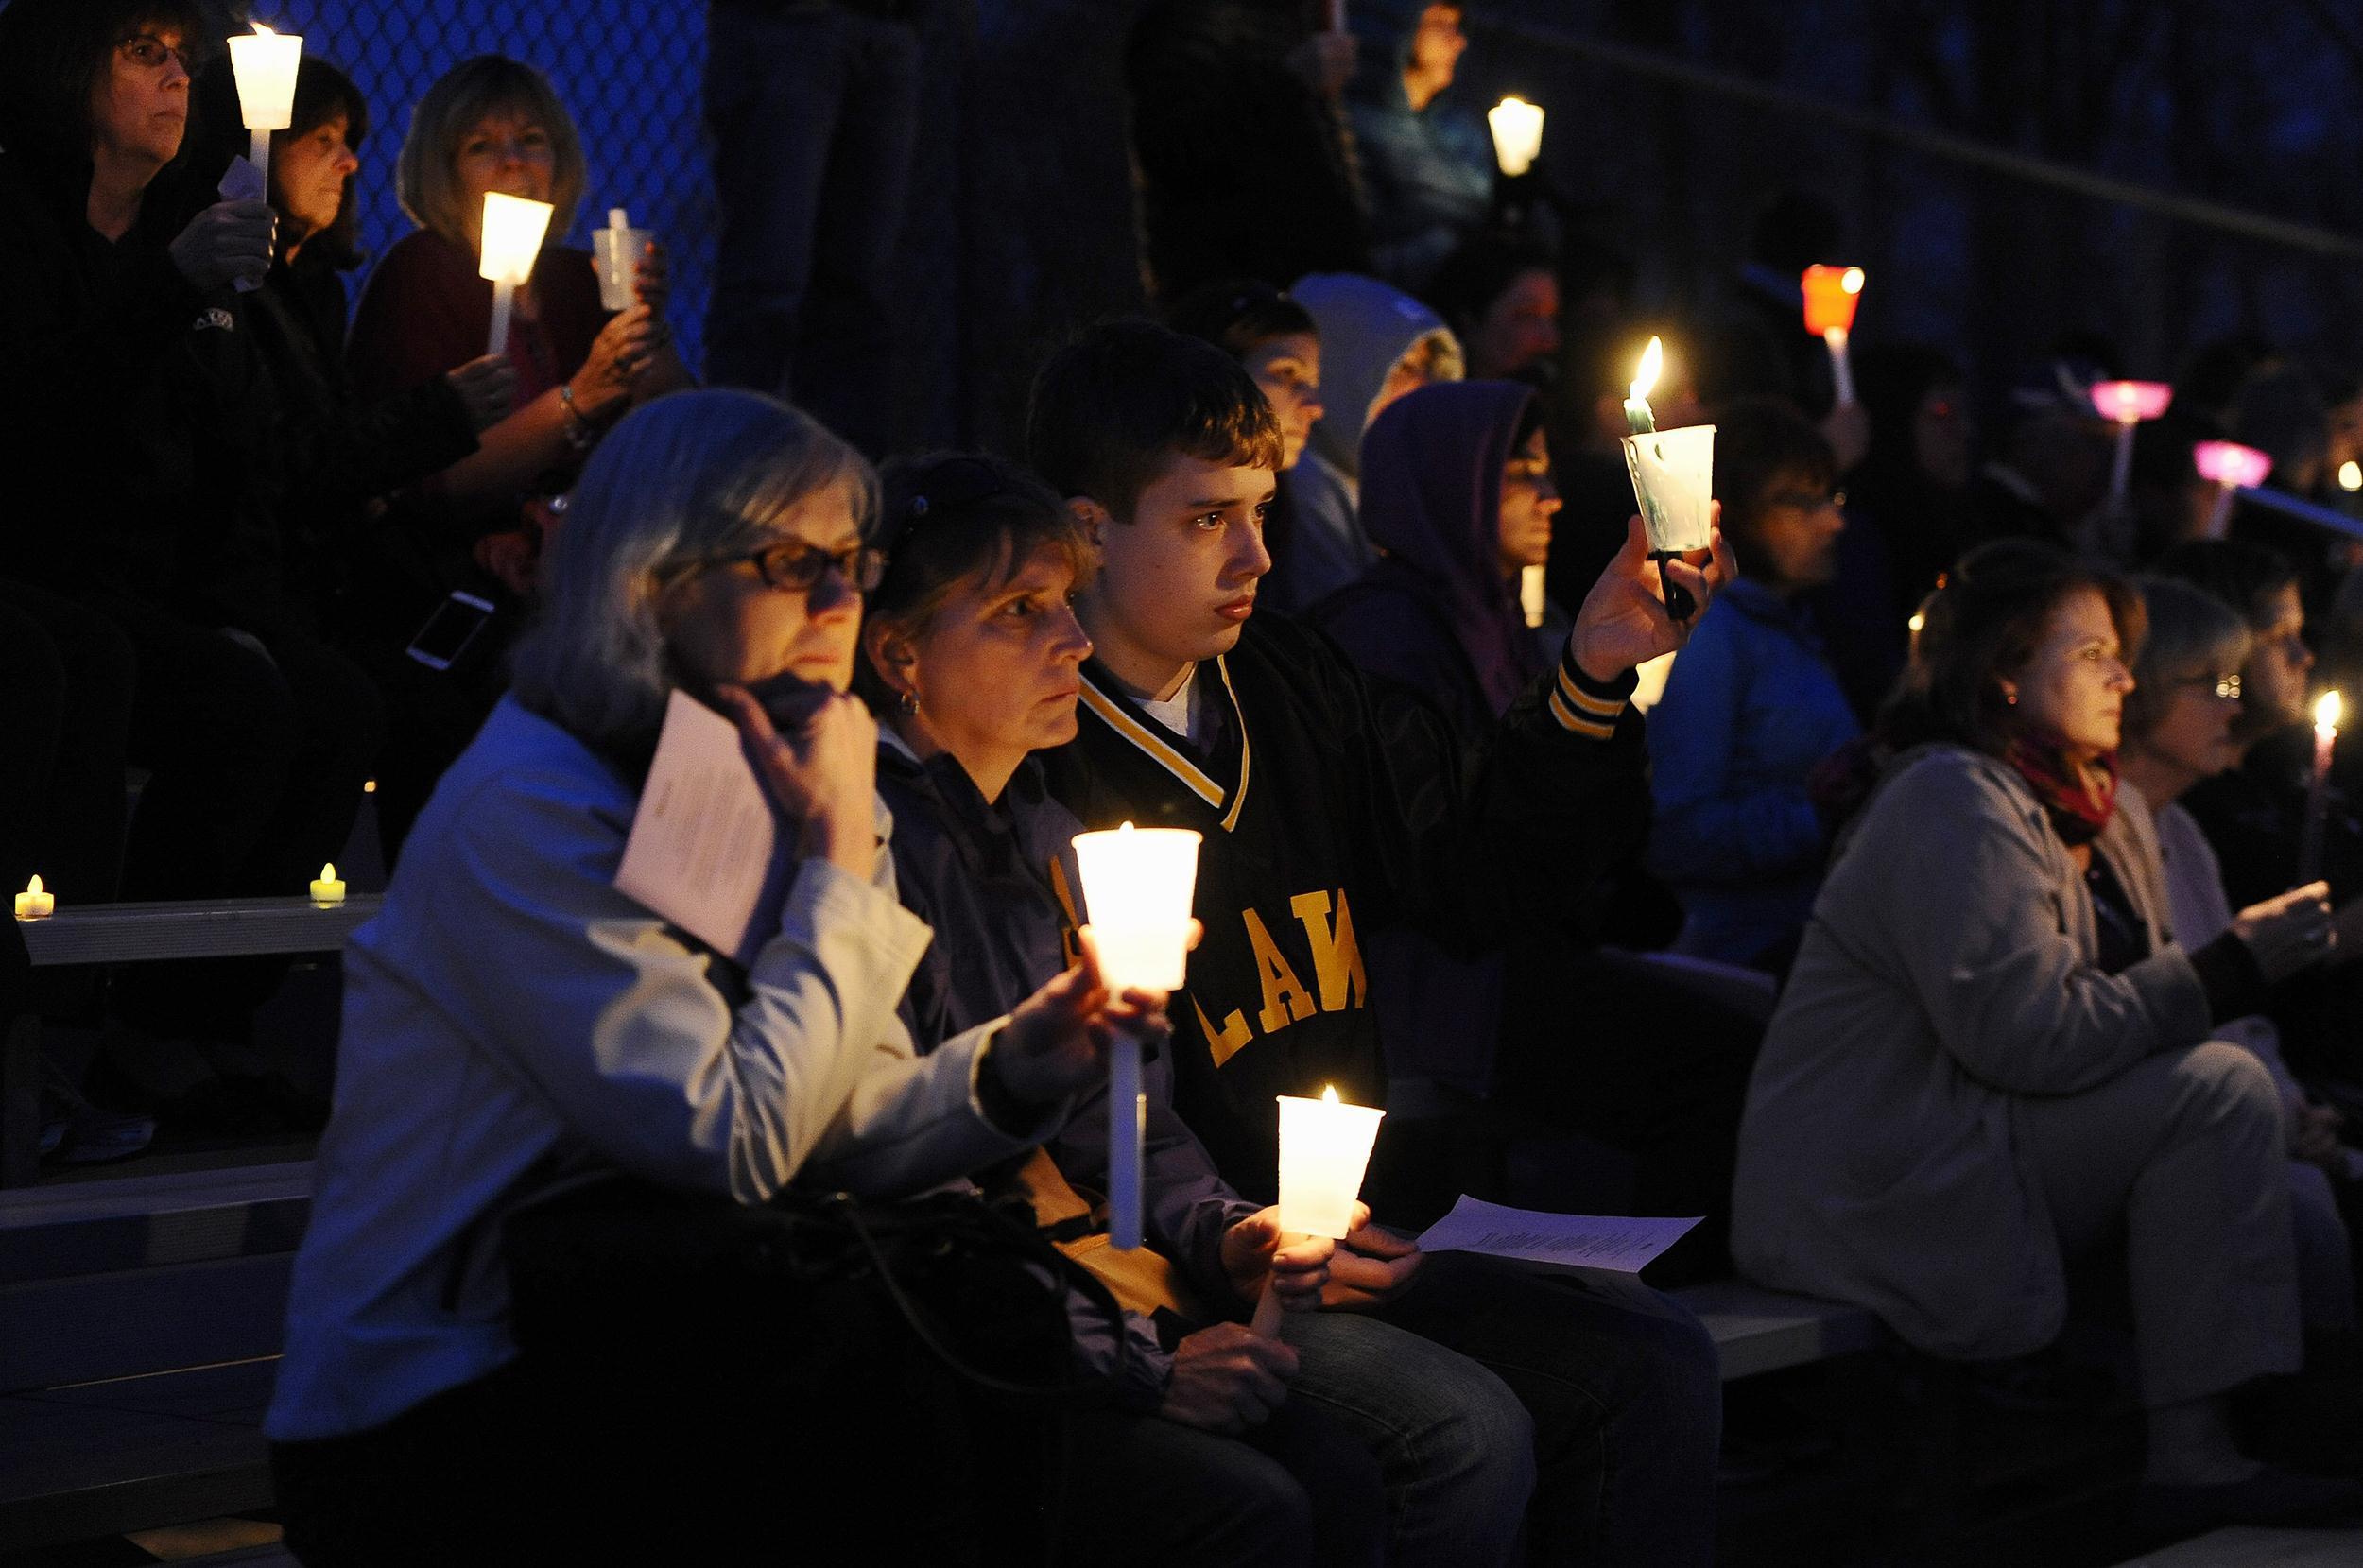 Image: People raise candles at a vigil for Maren Sanchez